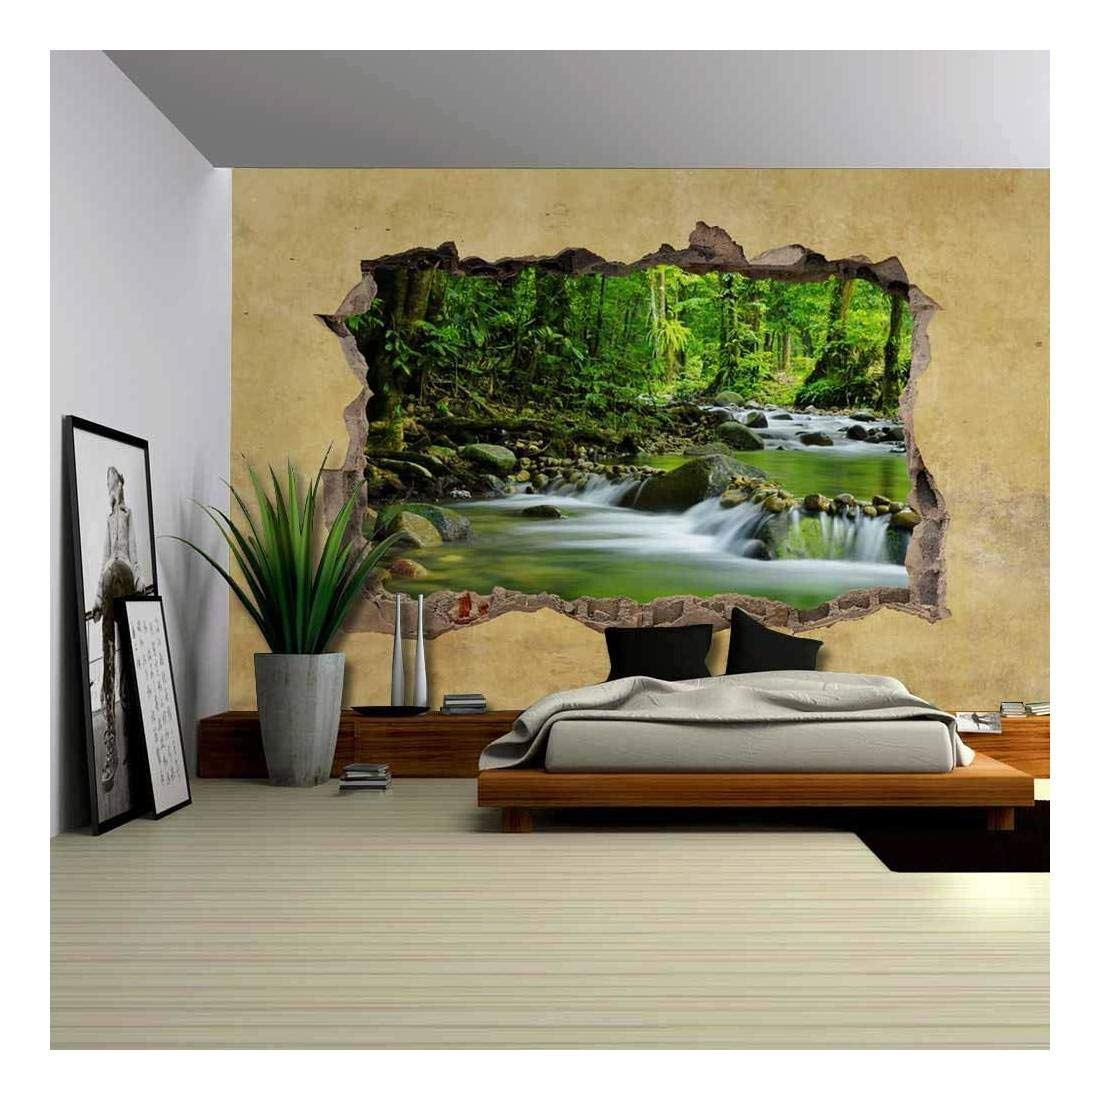 wall26 Cascading Spring in Tropical Rainforest Viewed through a Broken Wall - Large Wall Mural, Removable Peel and Stick Wallpaper, Home Decor - 66x96 inches